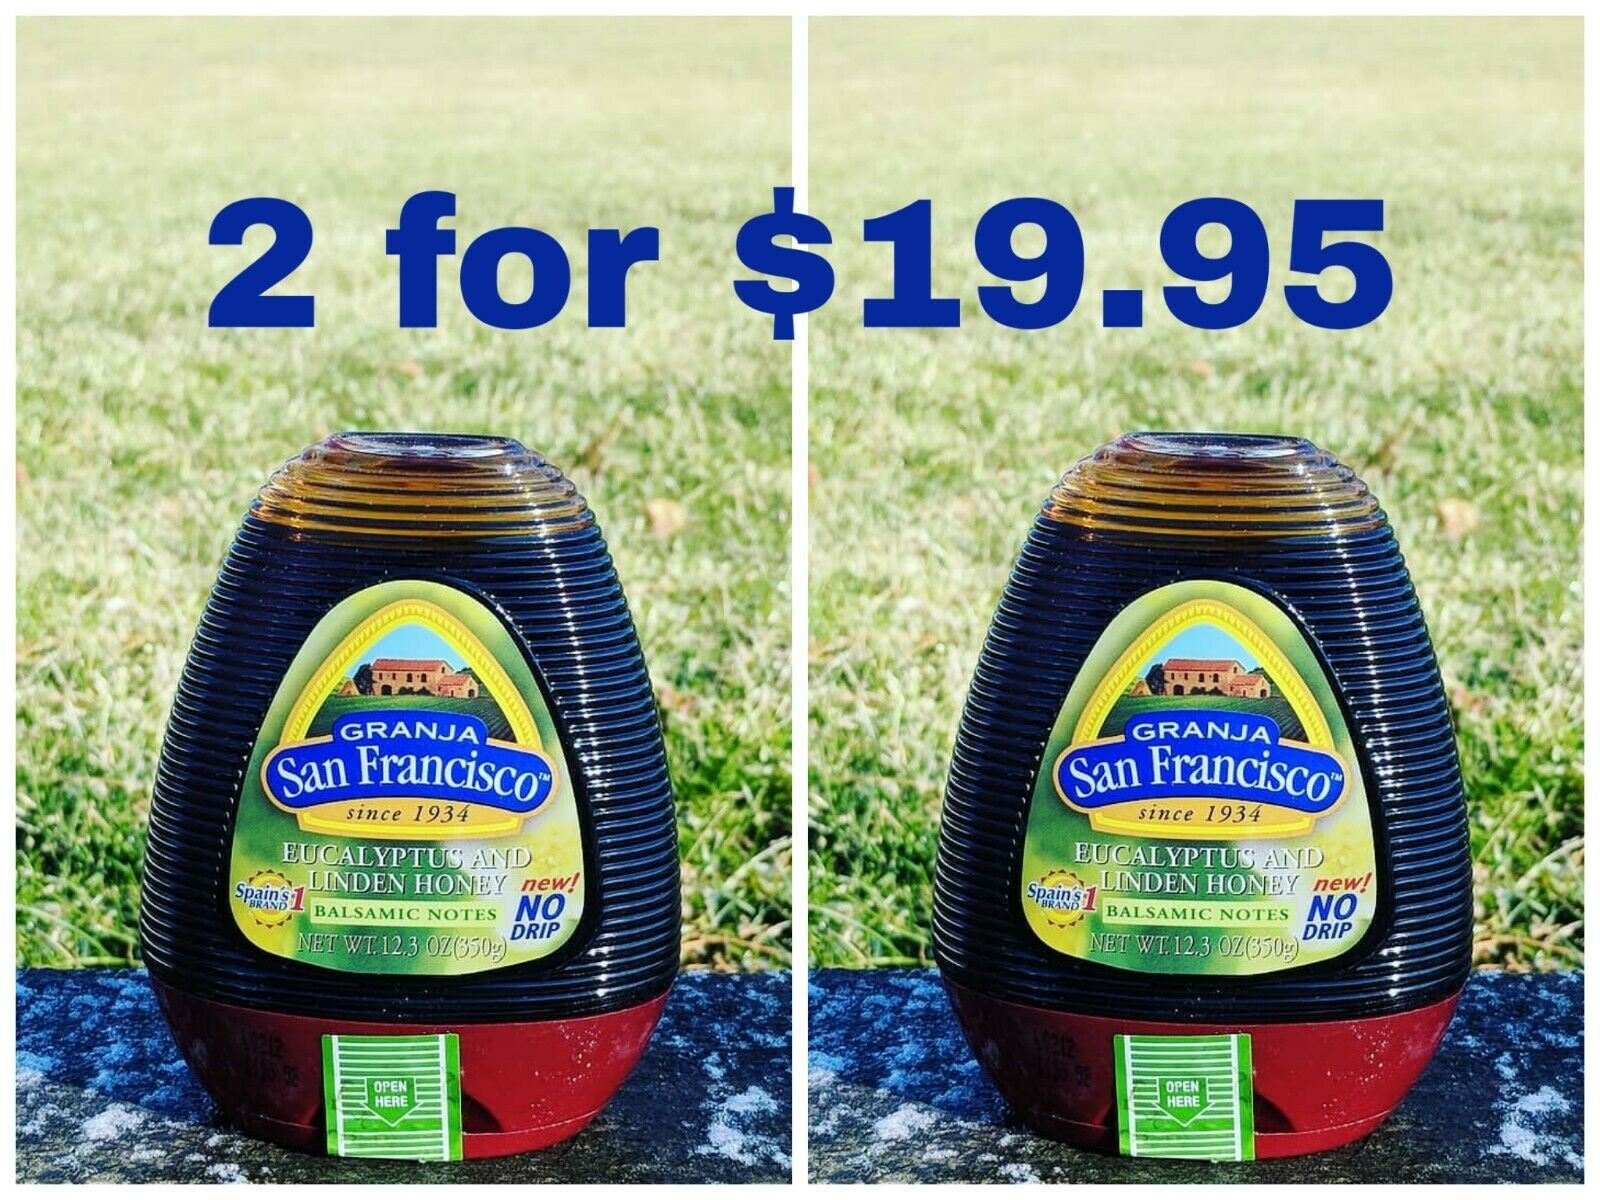 Eucalyptus and Linden Honey 12.3 oz Spain's #1 Brand! (2 for the price of 1) - $19.95